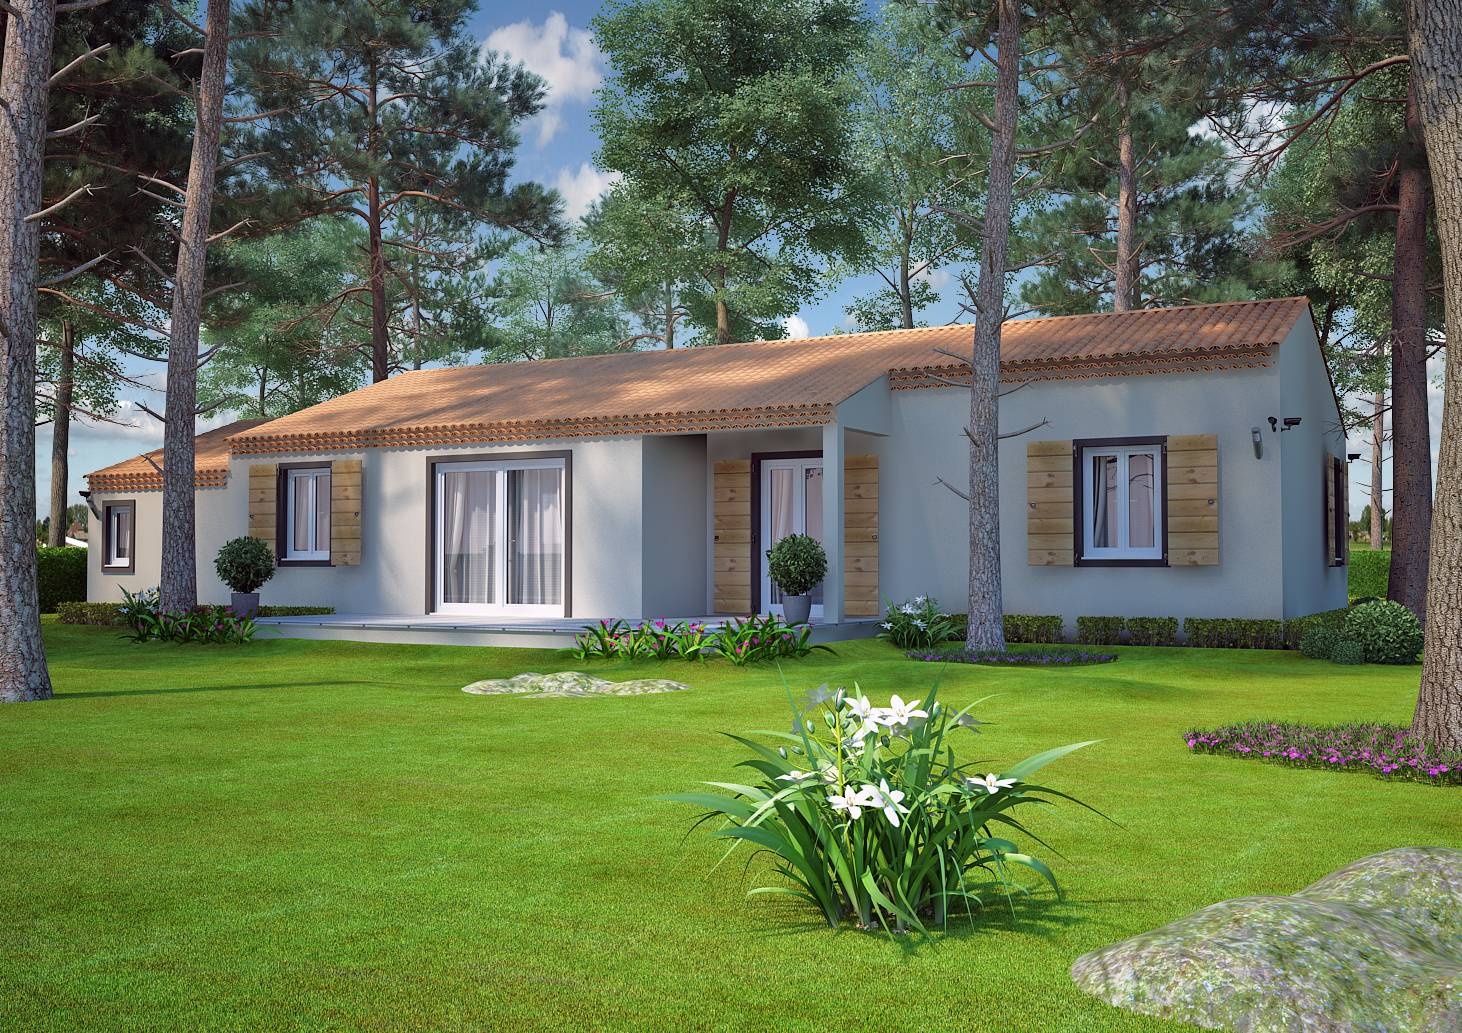 Mod le de construction traditionnelle de 90m2 de plain for Modele maison contemporaine plain pied